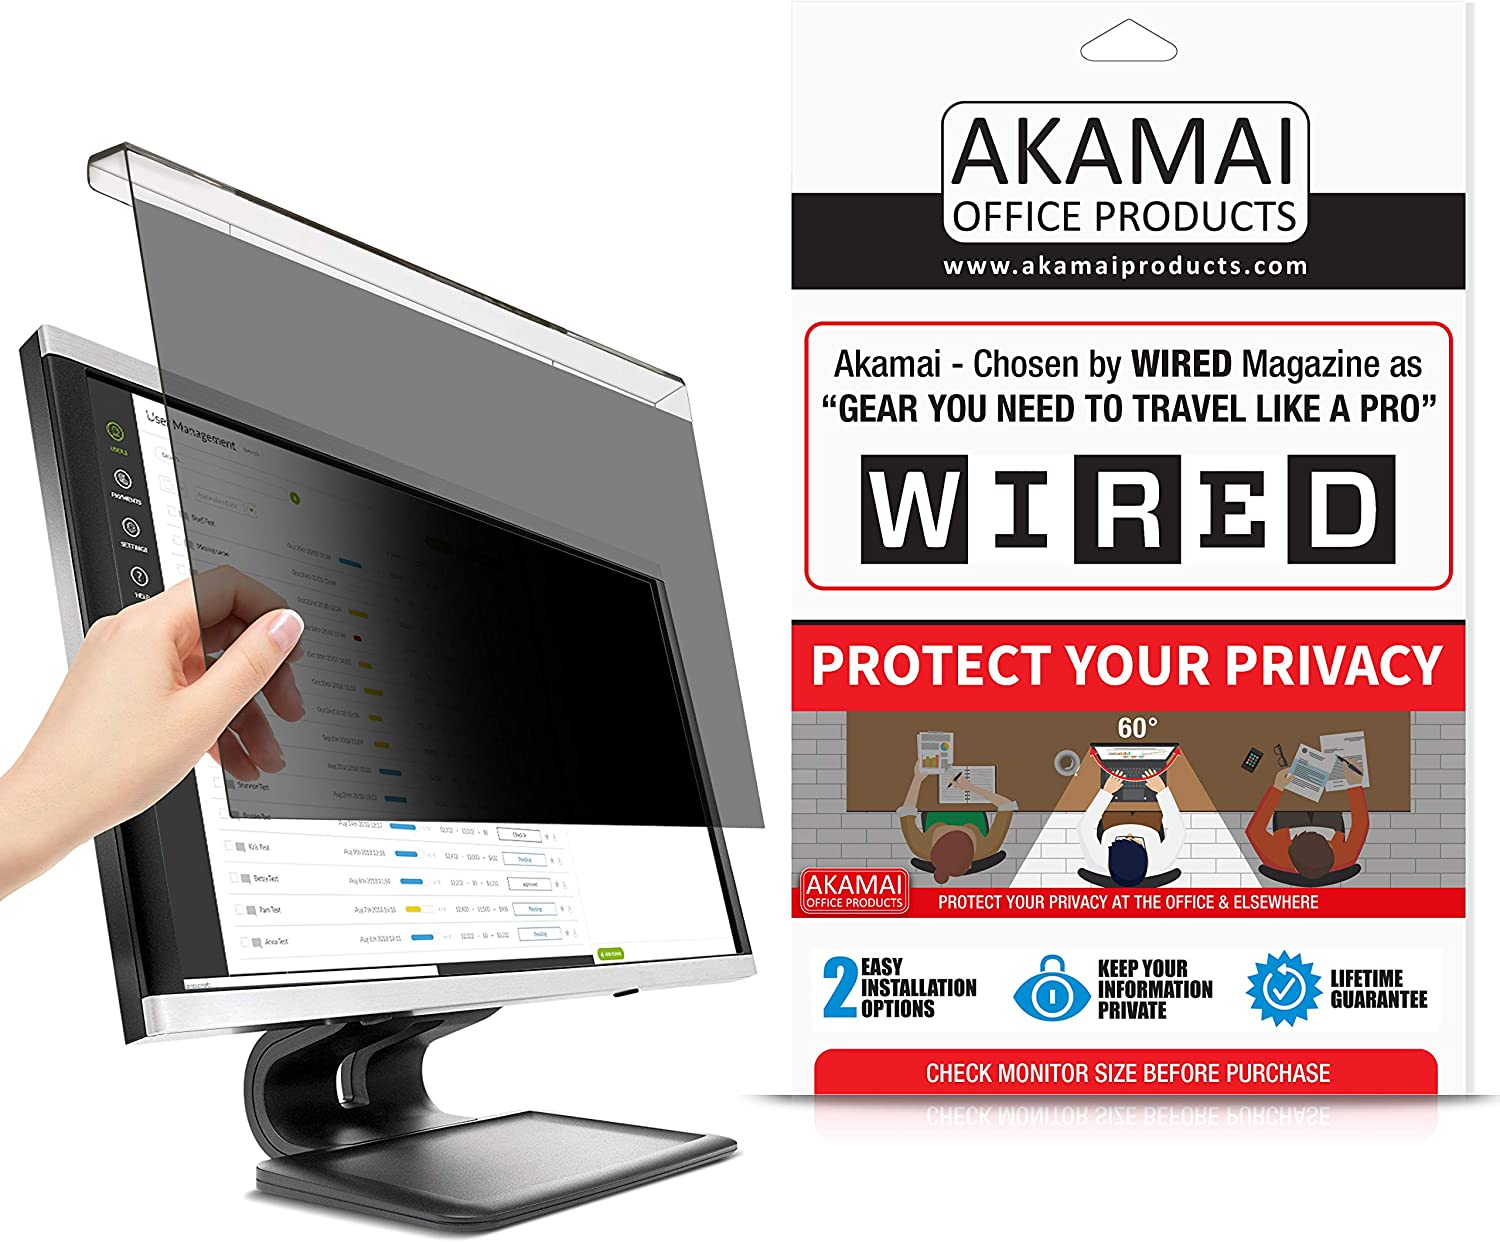 Akamai 20-22 Inch Acrylic Removable Monitor Privacy Screen - LCD Blackout Security Filter - Desktop Computer Protector (20 inch - 21.5 inch - 22 inch Diagonally Measured, Removable Acrylic)